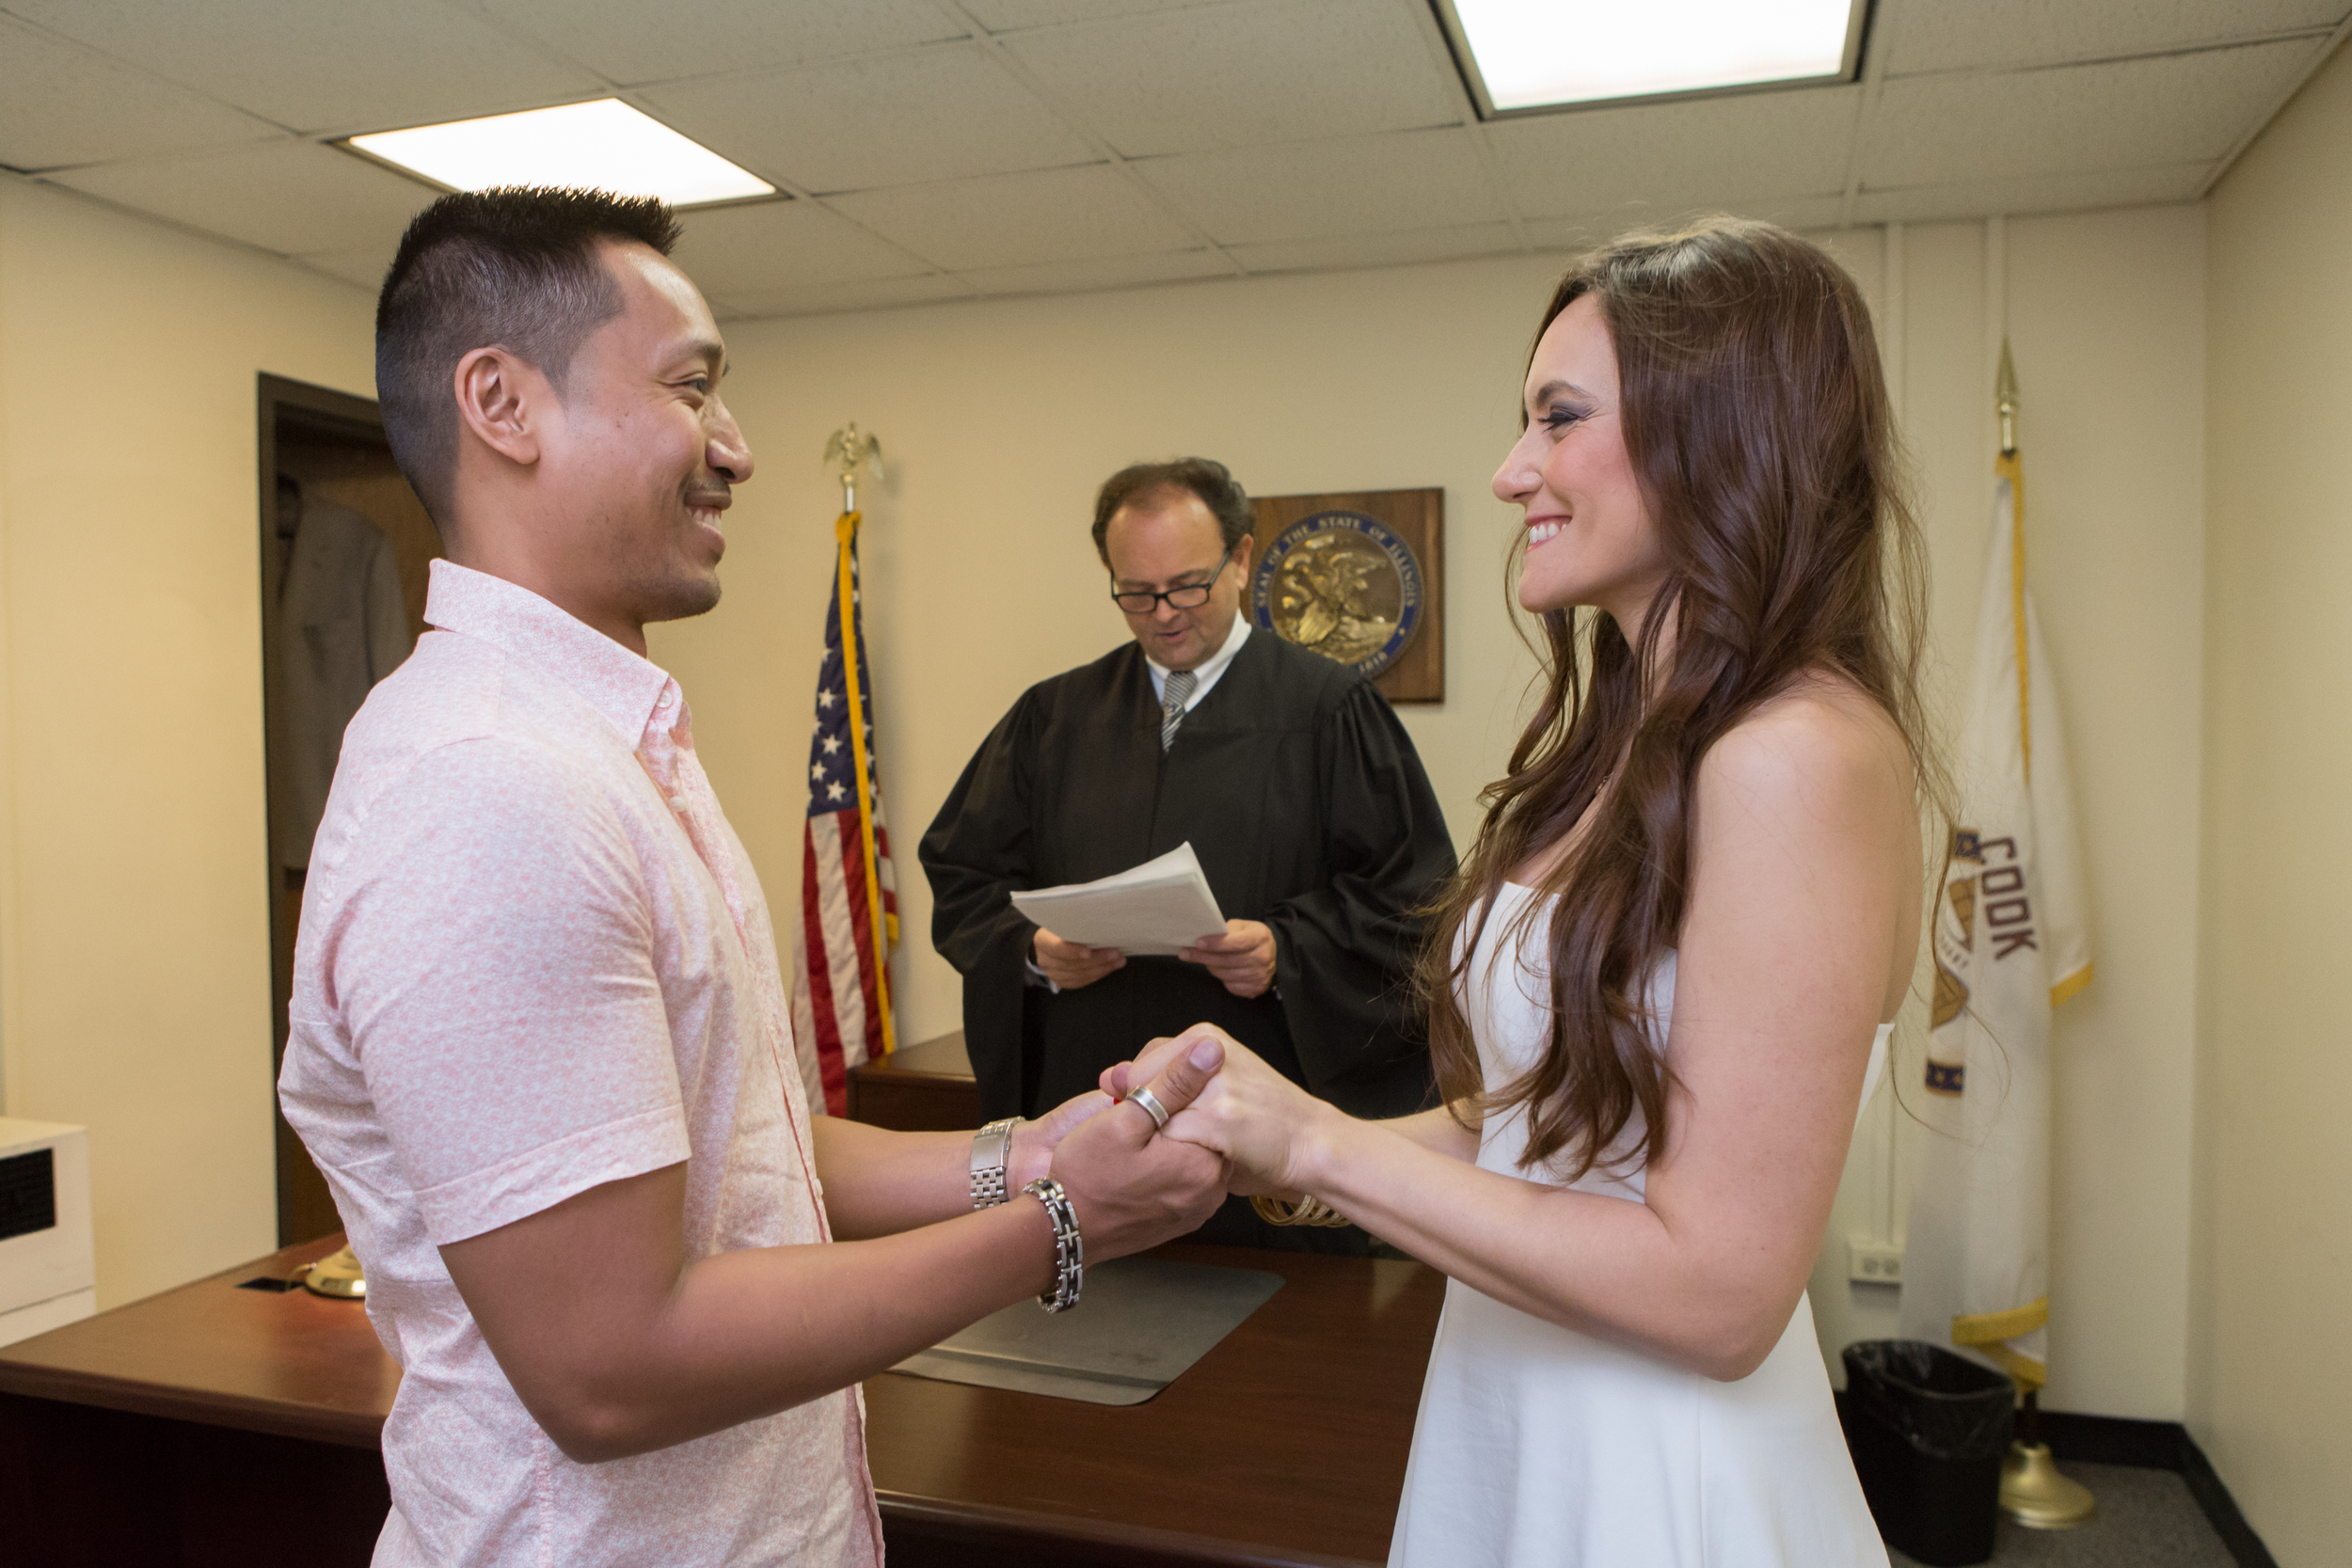 Aglade and Arnel getting married at the Chicago courthouse.